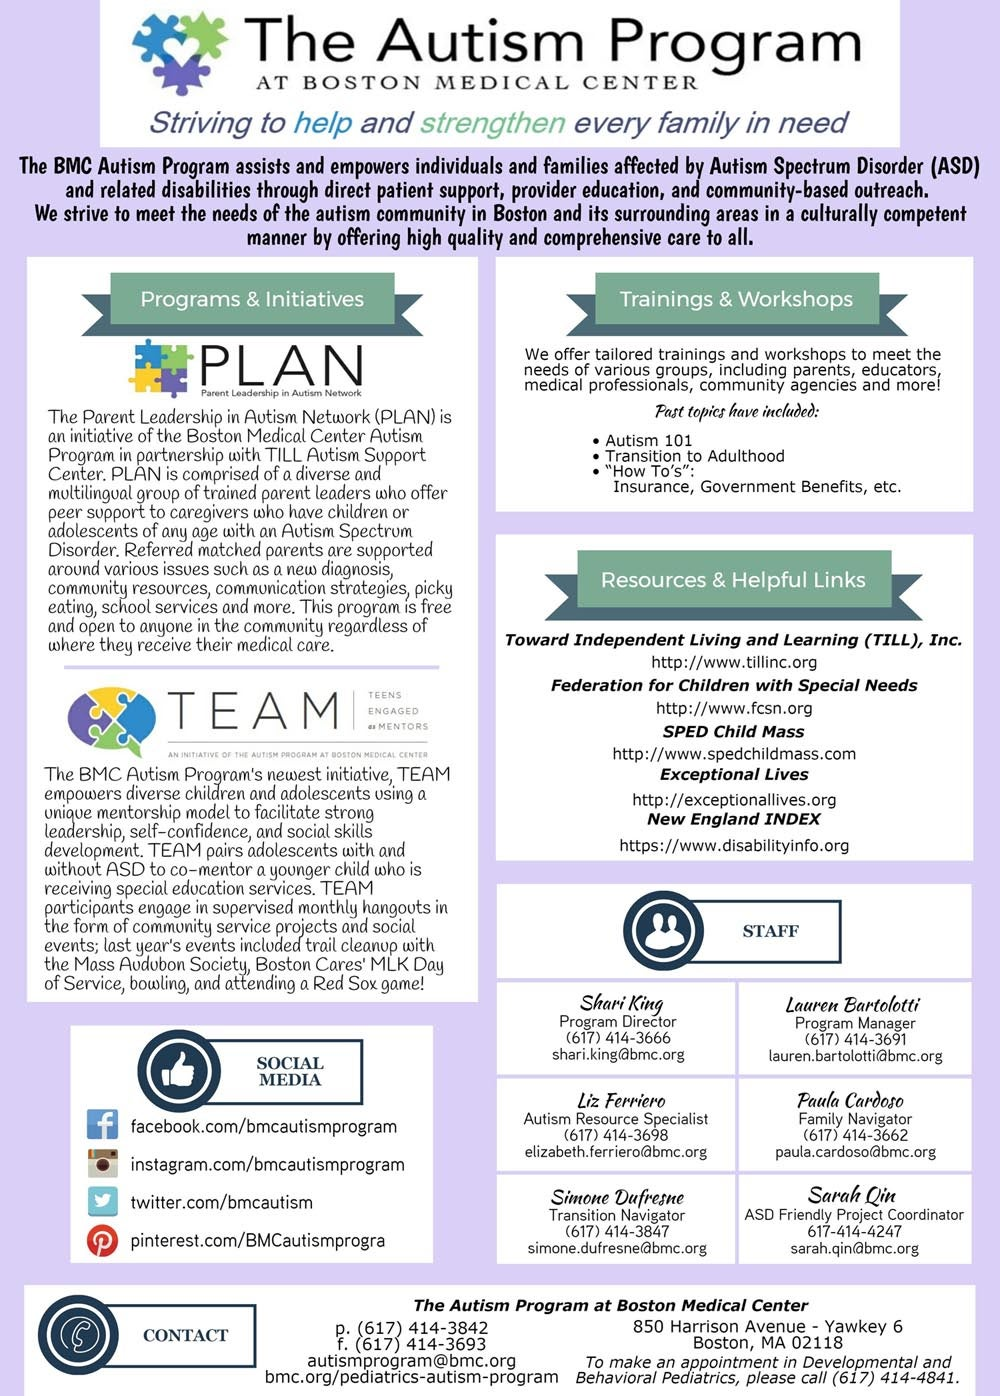 The Autism Plan at Boston Medical Center: Page 1